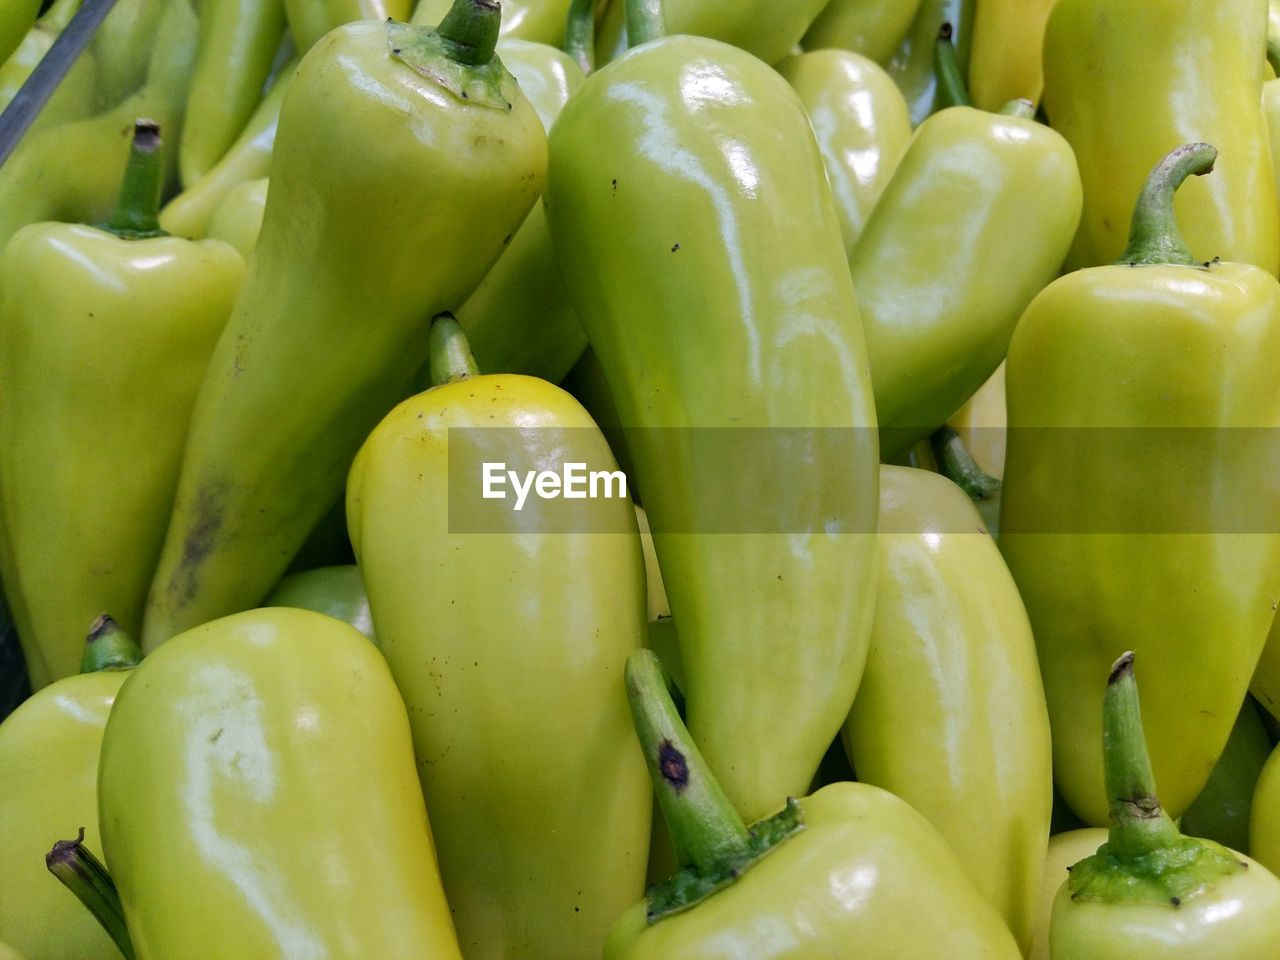 healthy eating, food and drink, food, wellbeing, full frame, green color, freshness, market, for sale, retail, large group of objects, backgrounds, vegetable, no people, close-up, abundance, still life, market stall, indoors, repetition, retail display, ripe